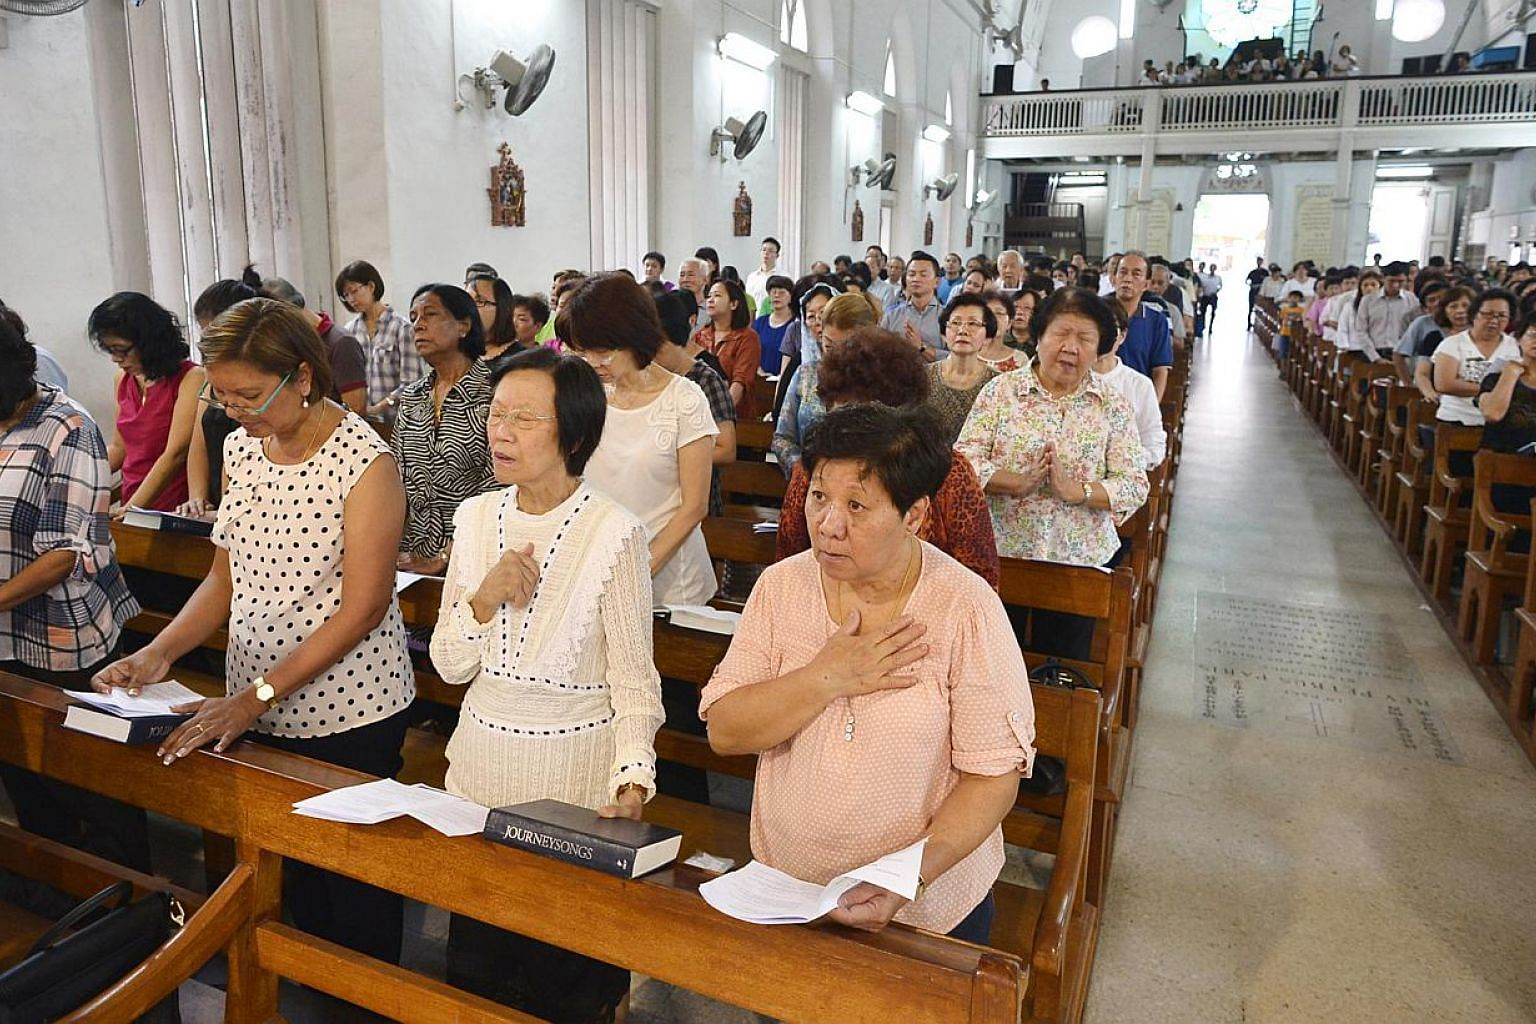 About 500 Singaporeans and Filipinos attended a solidarity mass led by Archbishop William Goh at the Church of Saints Peter and Paul on Tuesday evening. -- ST PHOTO: ASHLEIGH SIM